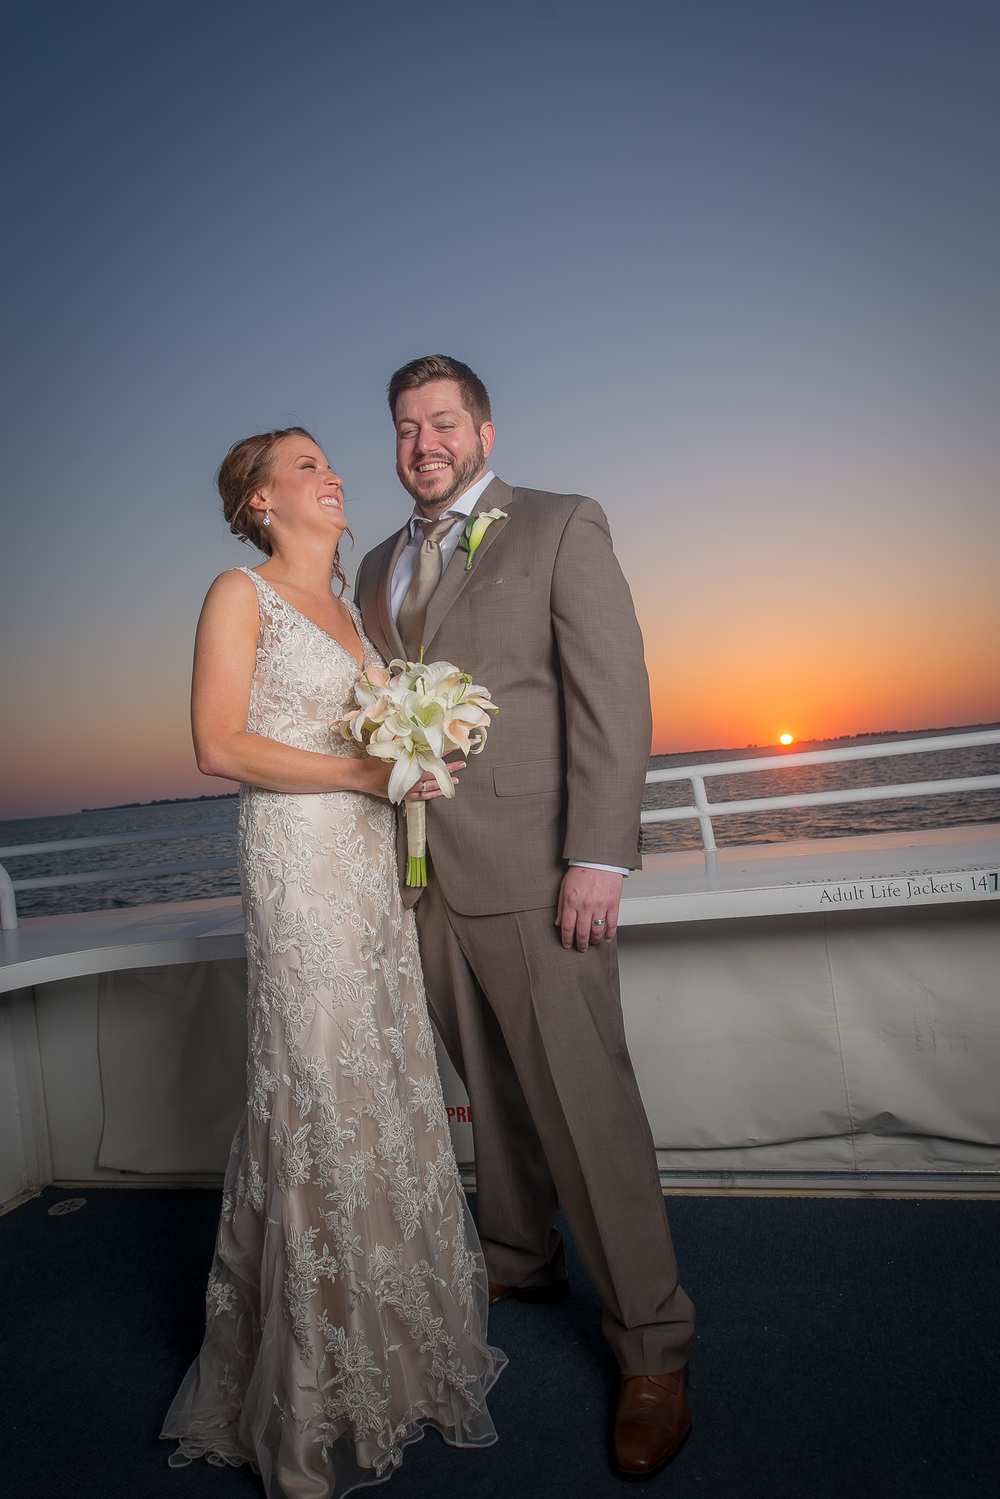 Amanda and Philip_Sanibel Marriott Resort_Wedding Photography-0027.jpg